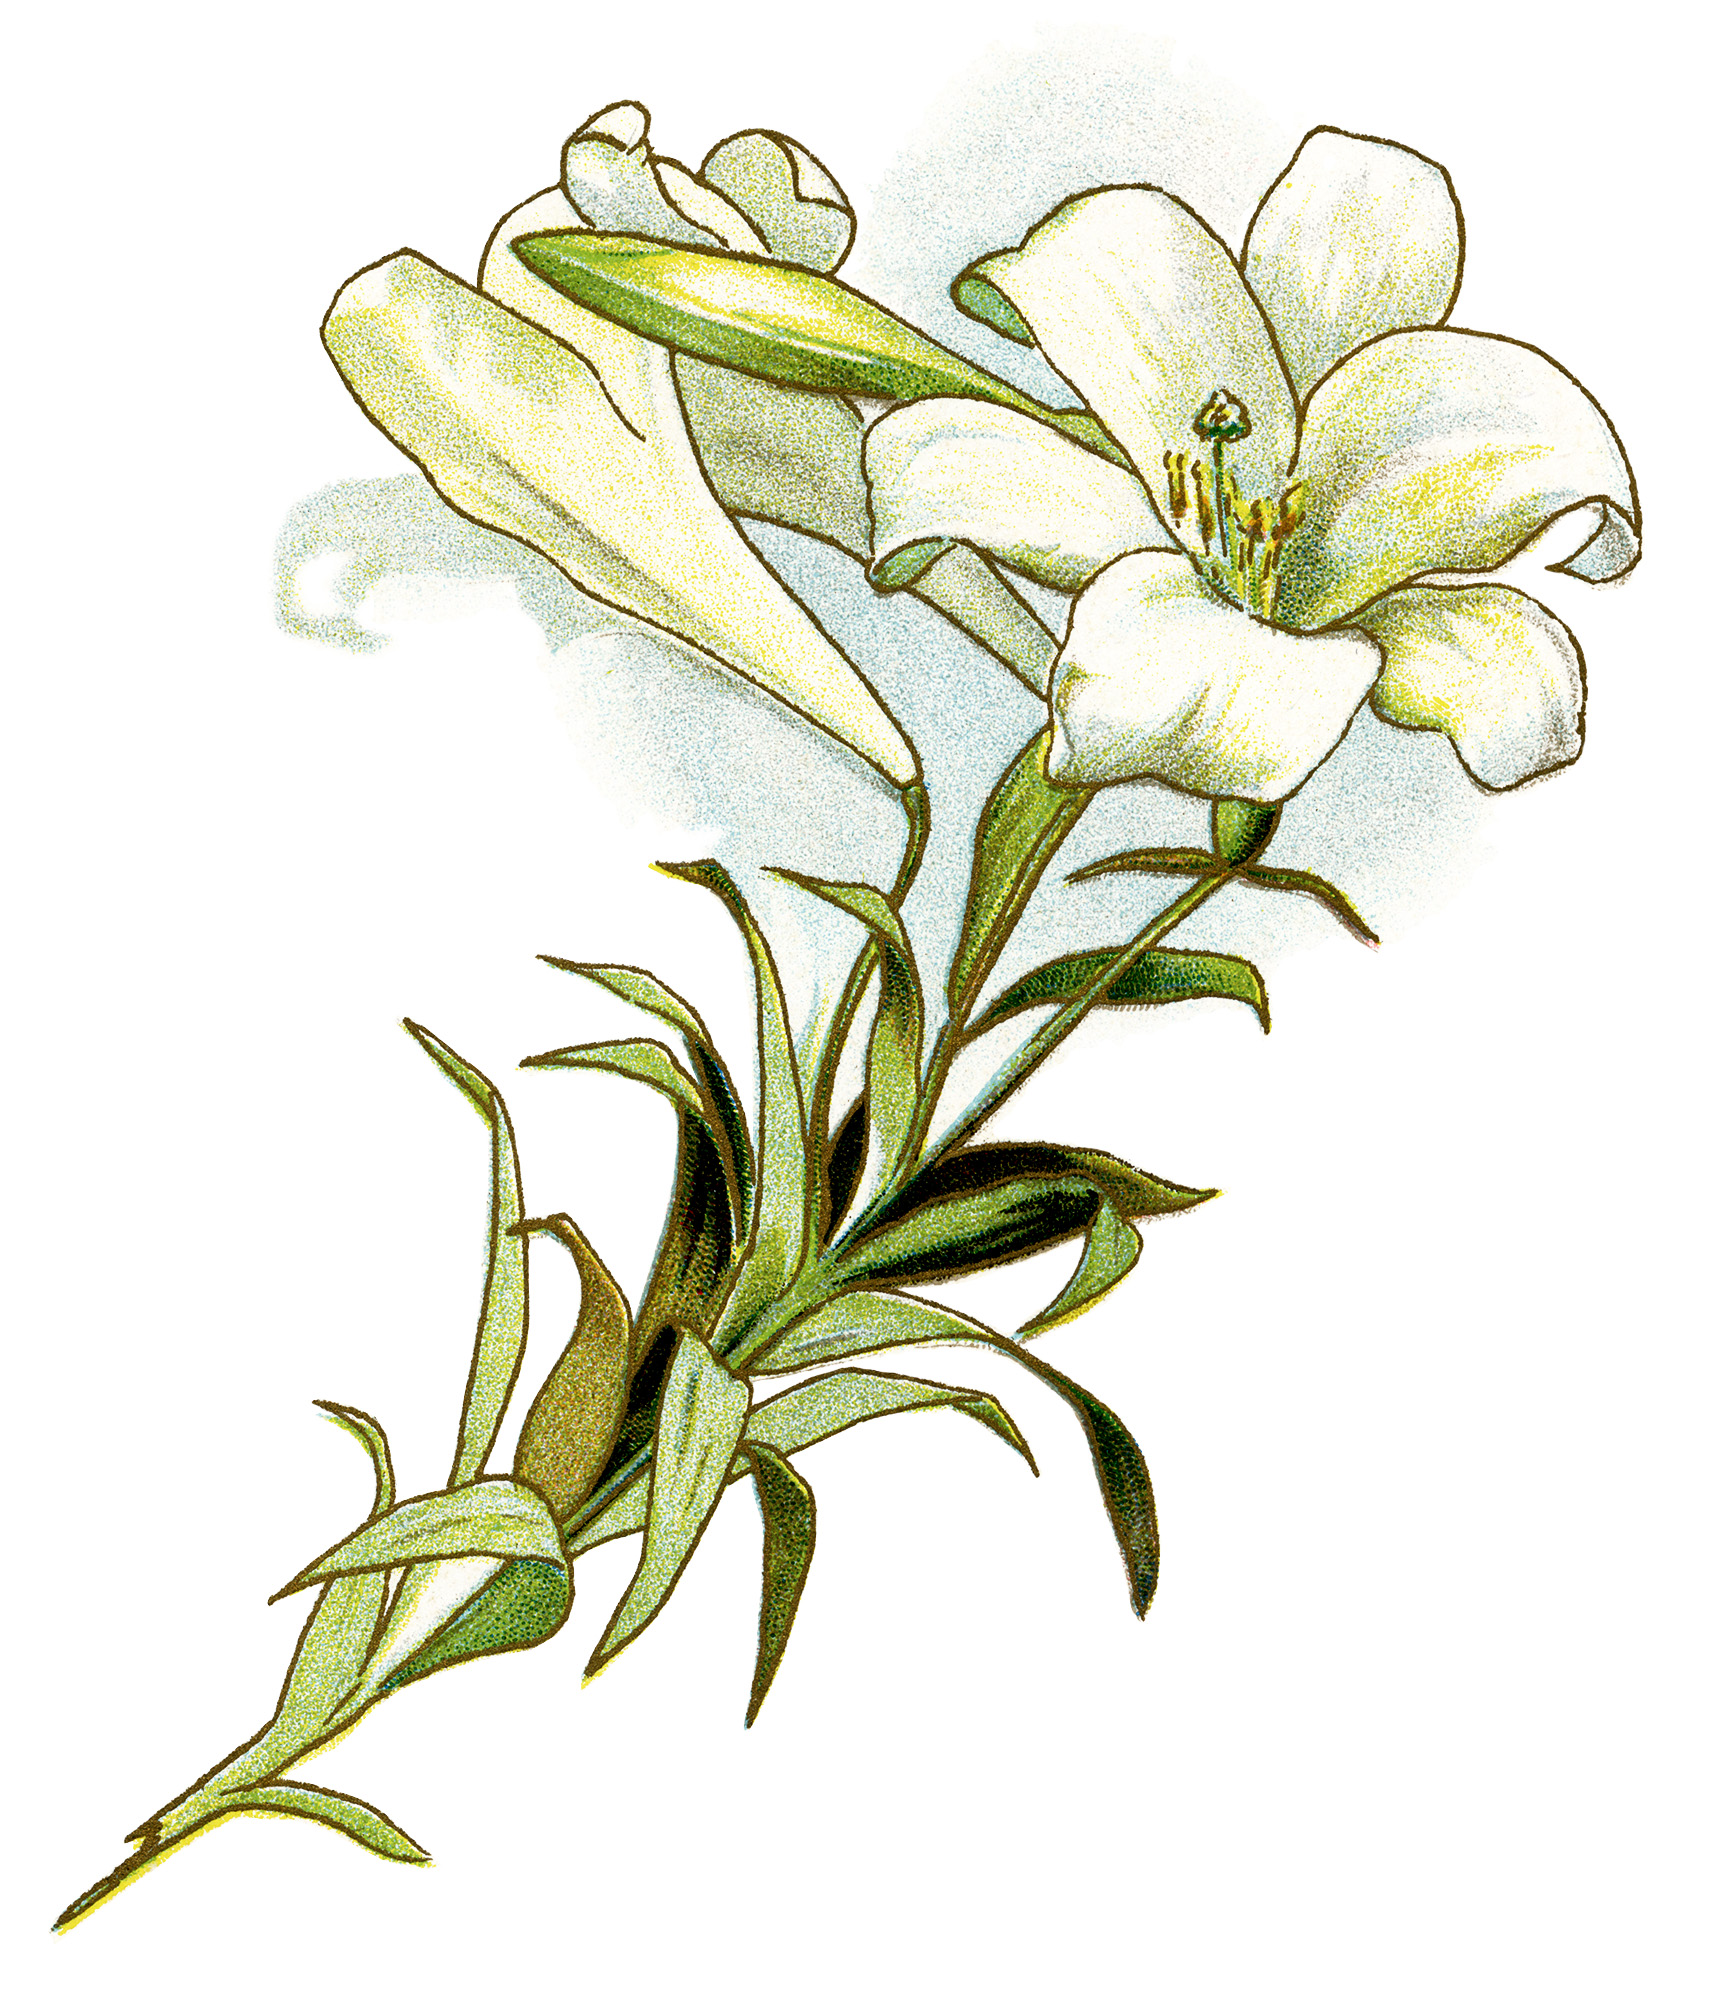 easter lilies free clipart - photo #5